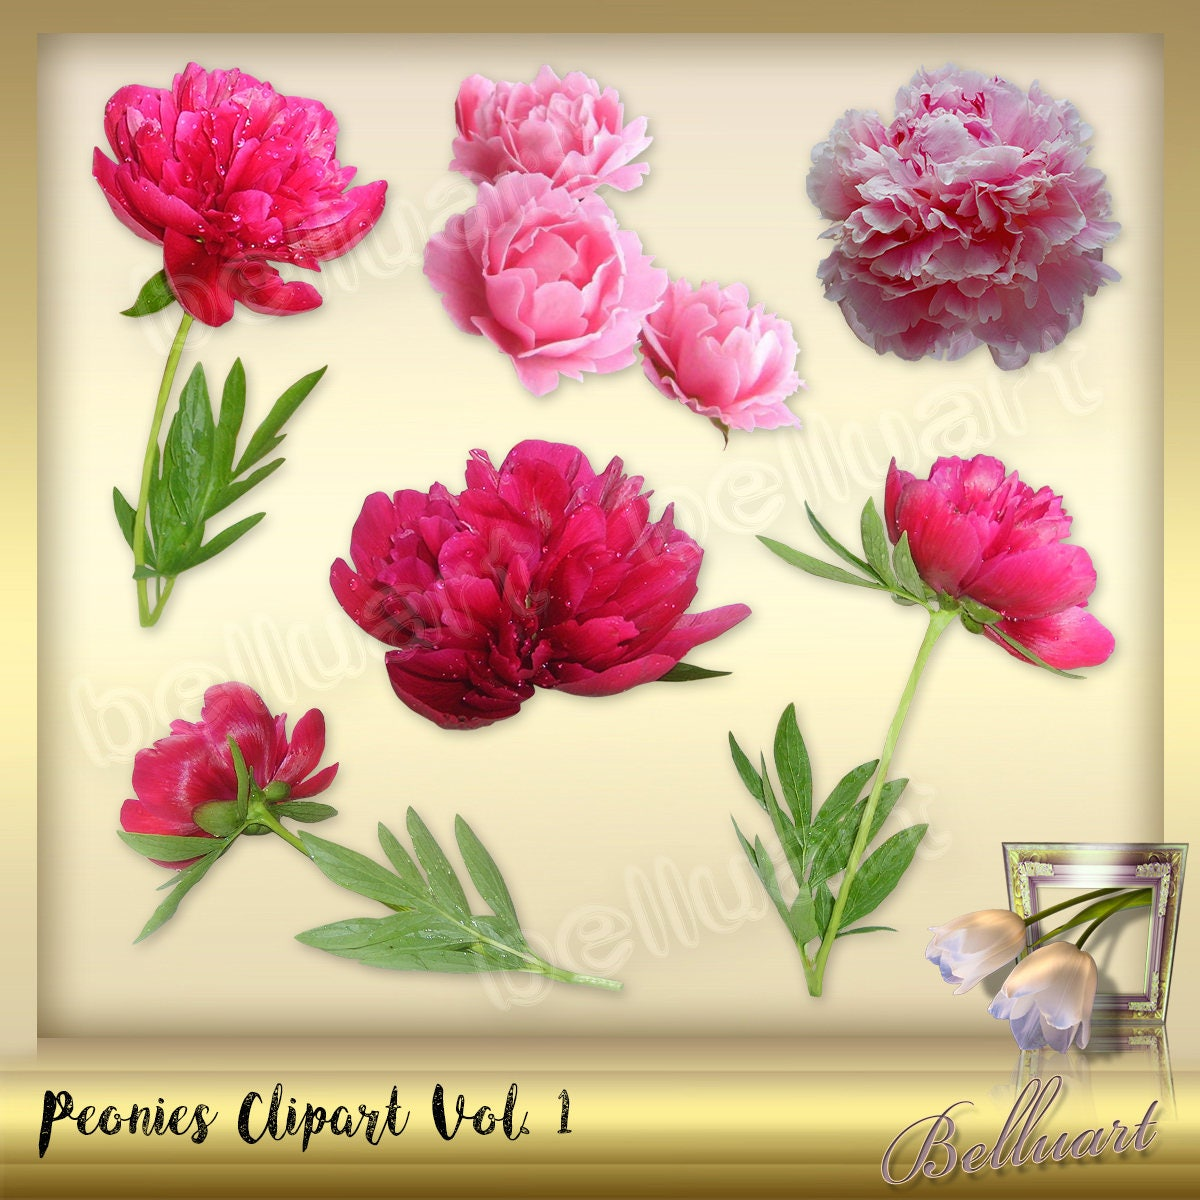 6 Peonies Clipart Vol. 1 Peony Clipart Real Style clip art | Etsy